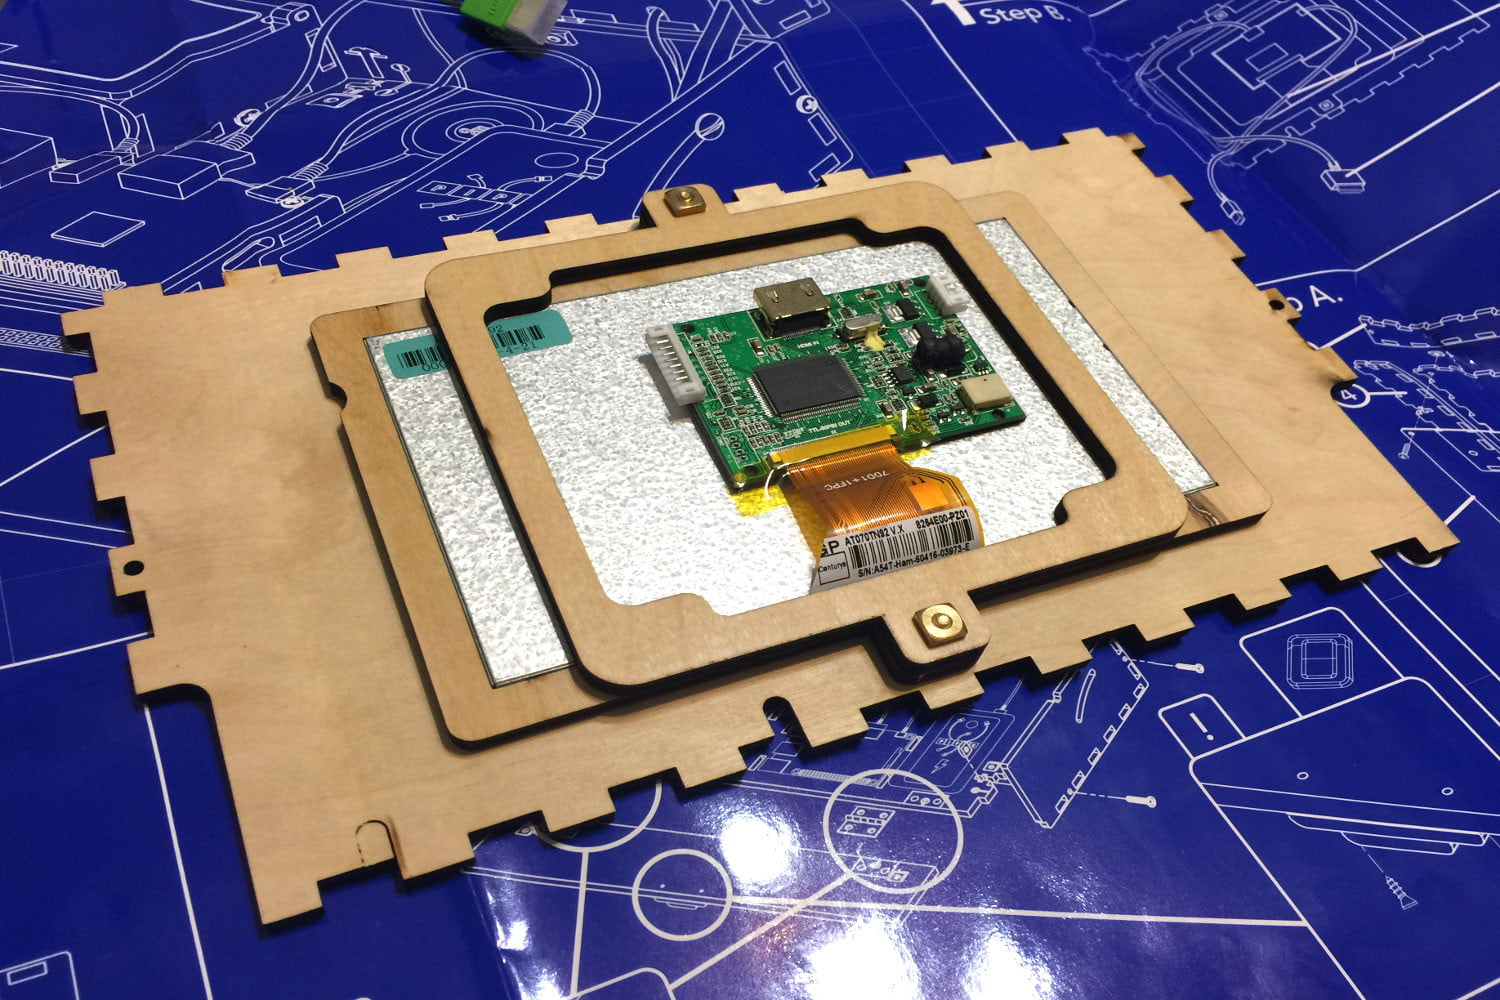 Piper Computer Kit Review Digital Trends Creative And Cool Ways To Reuse Old Circuit Boards 15 7 Sides